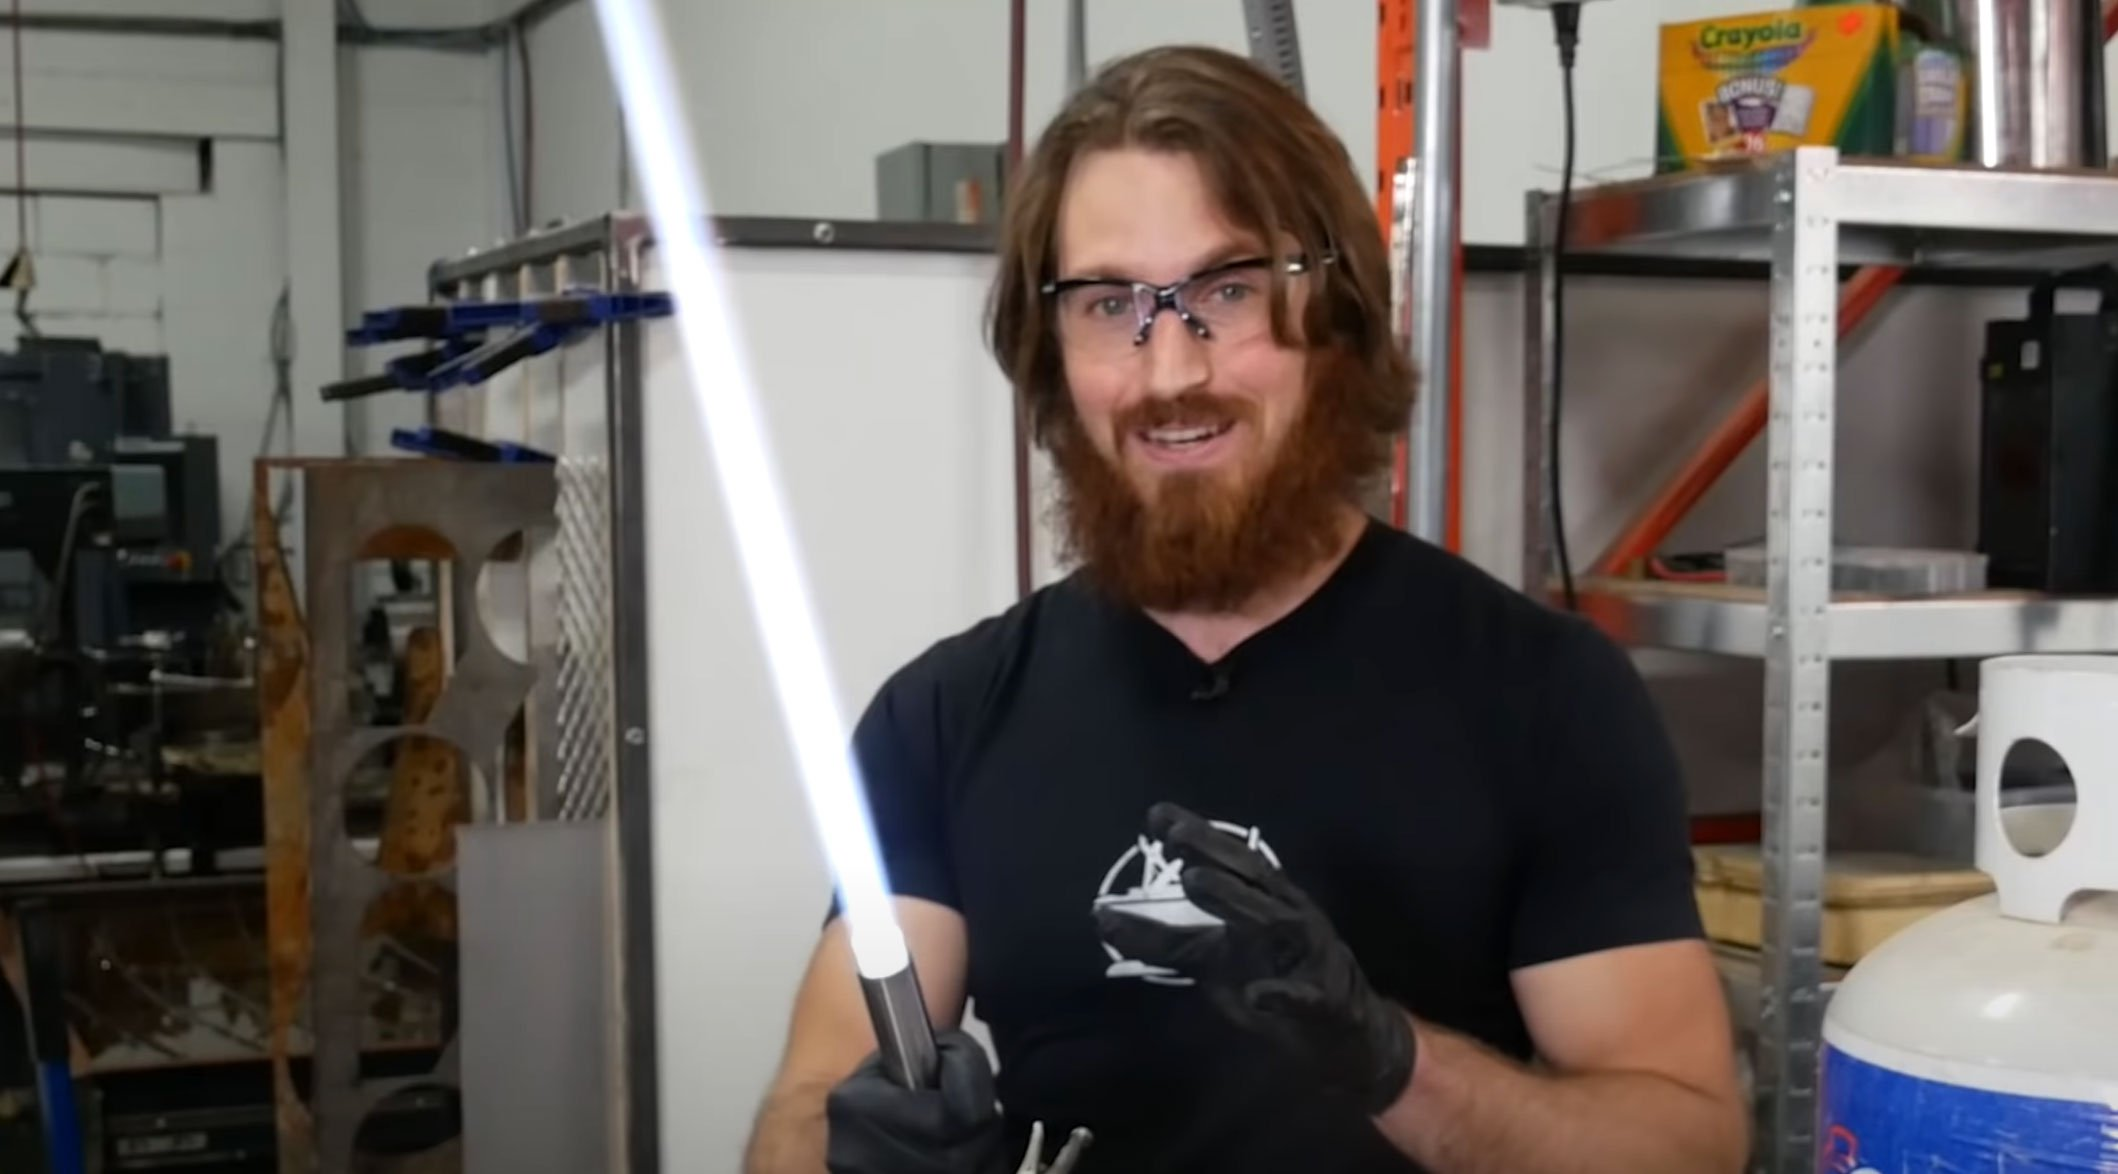 The Hacksmith Lightsaber